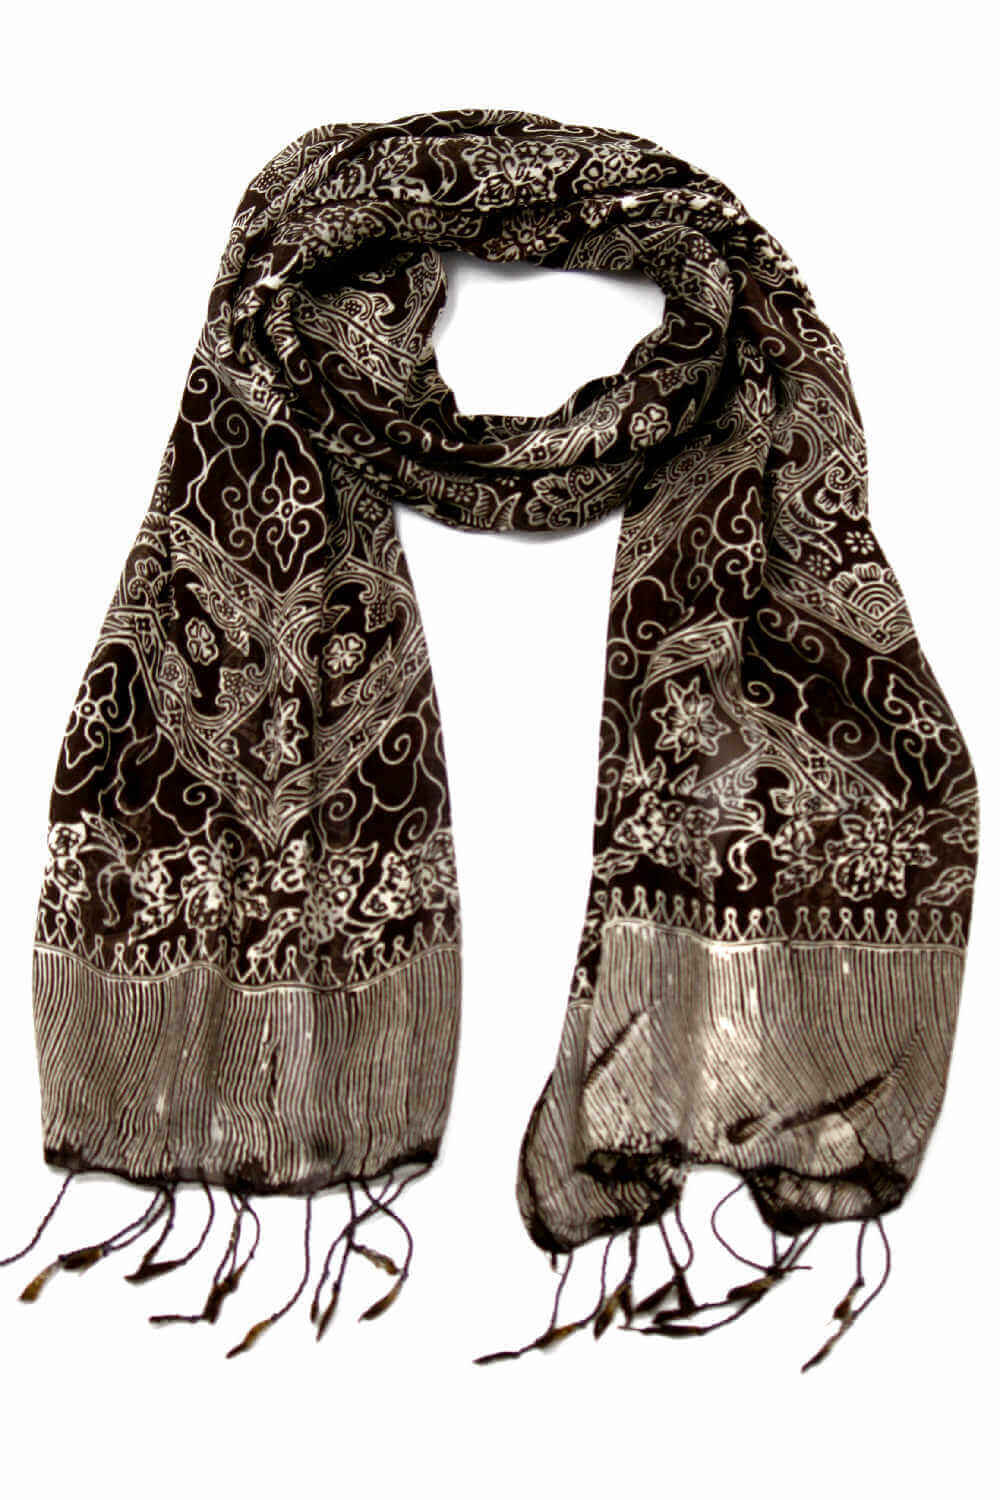 silk-scarf-floral-design-chocolate-brown